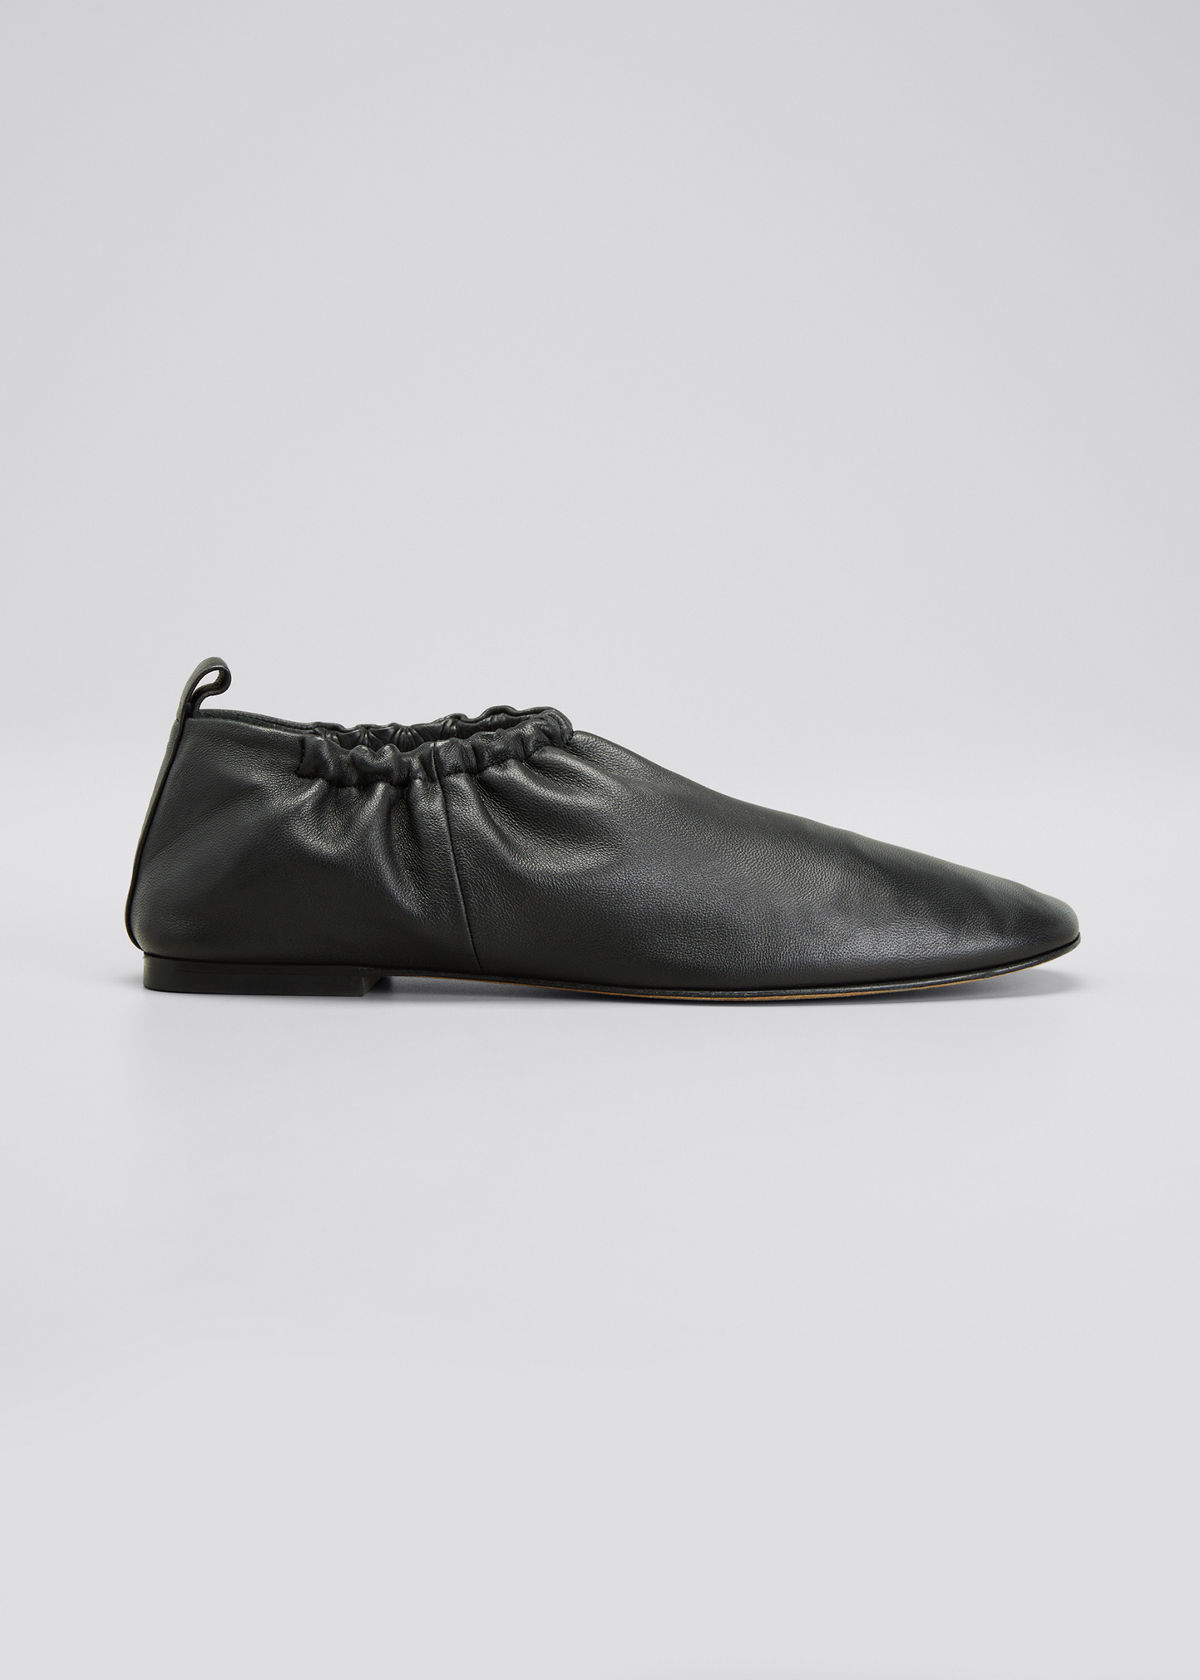 3.1 Phillip Lim RUCHED LEATHER FLAT LOAFER SLIPPERS